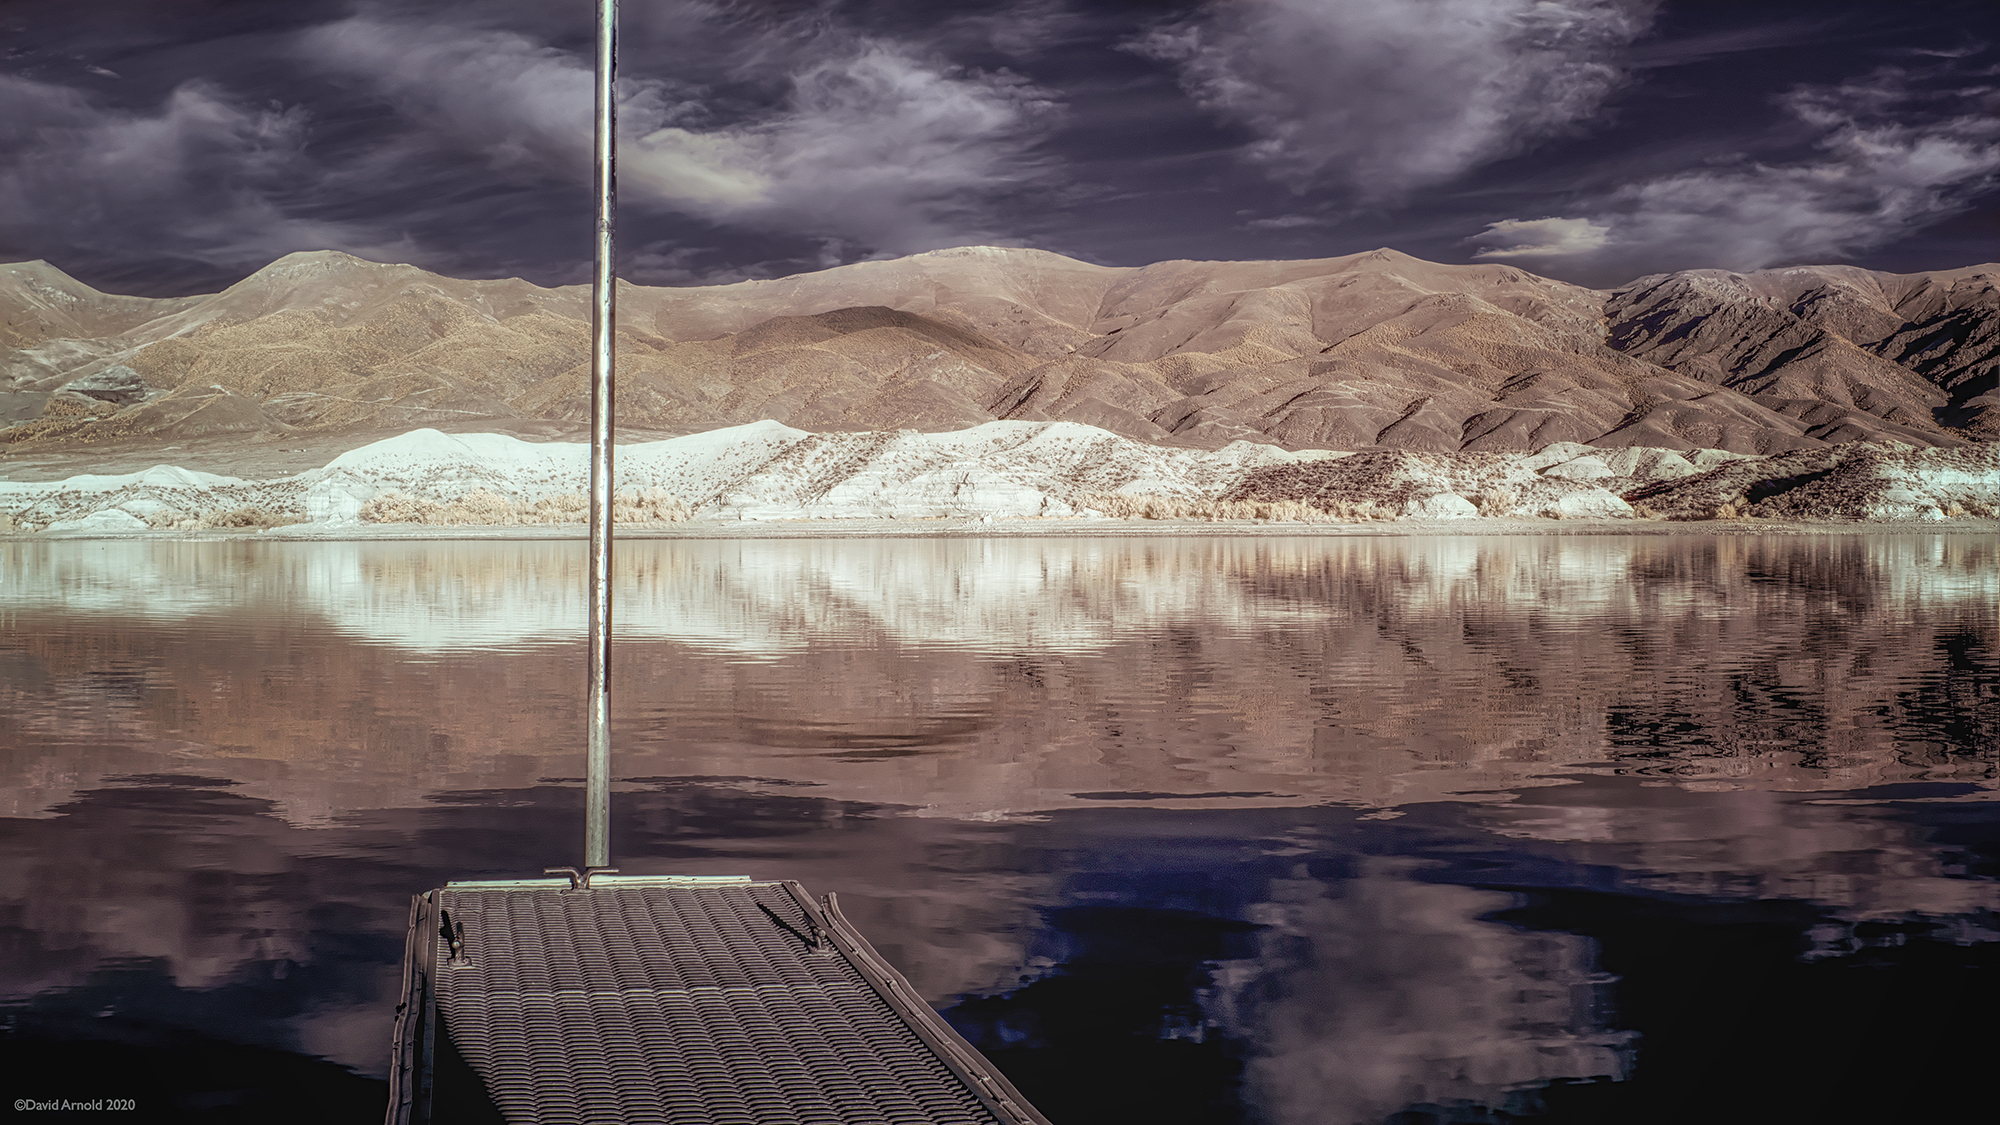 Aluminum Dock and Pole, Rye Patch Reservoir, Nevada